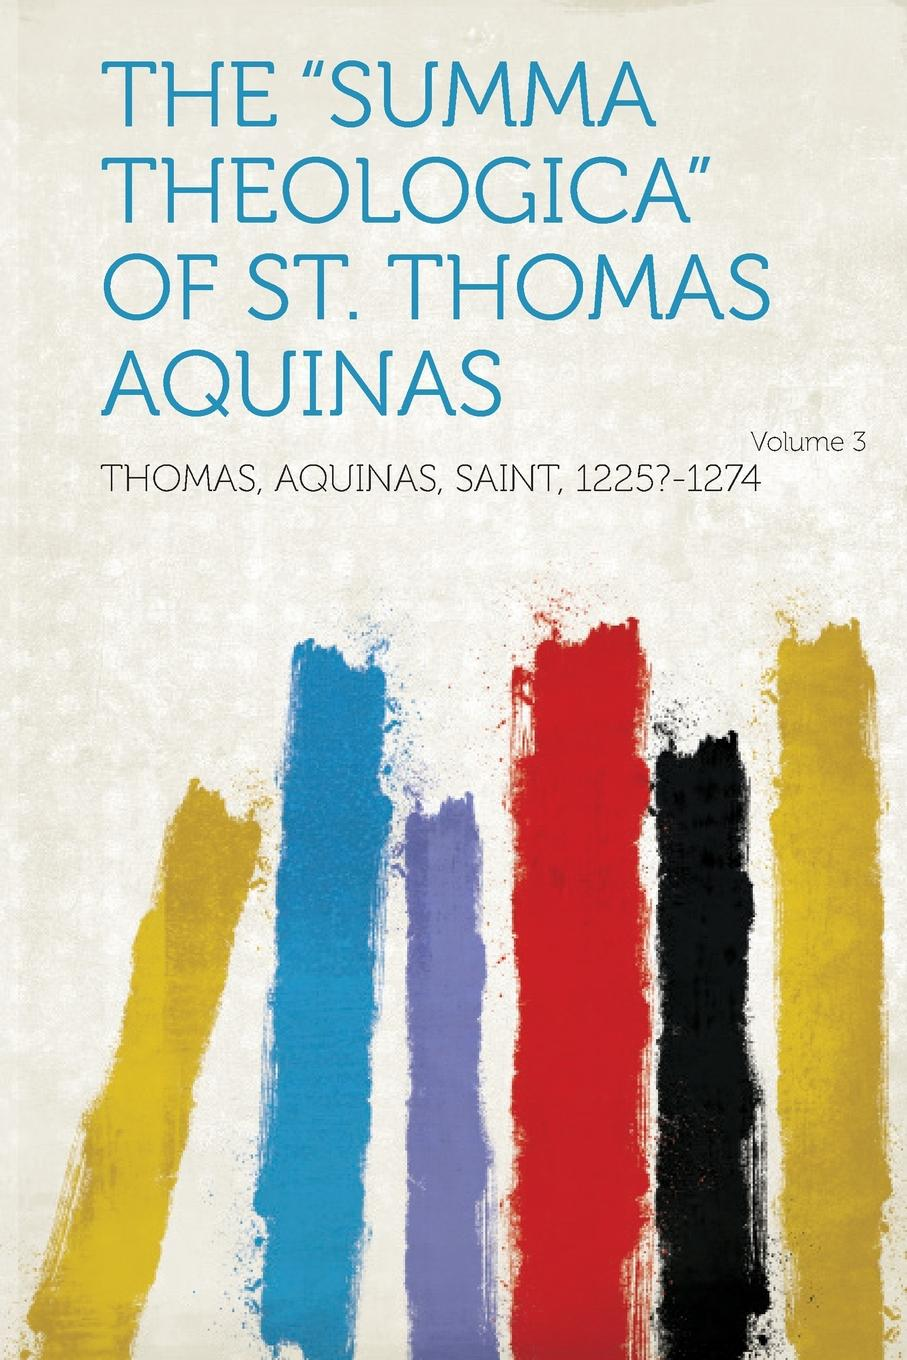 Thomas Aquinas The Summa Theologica of St. Thomas Aquinas Volume 3 aquinas saint thomas aquinas ethicus or the moral teaching of st thomas a translation of the principle portions of the second part of the summa theologica with notes